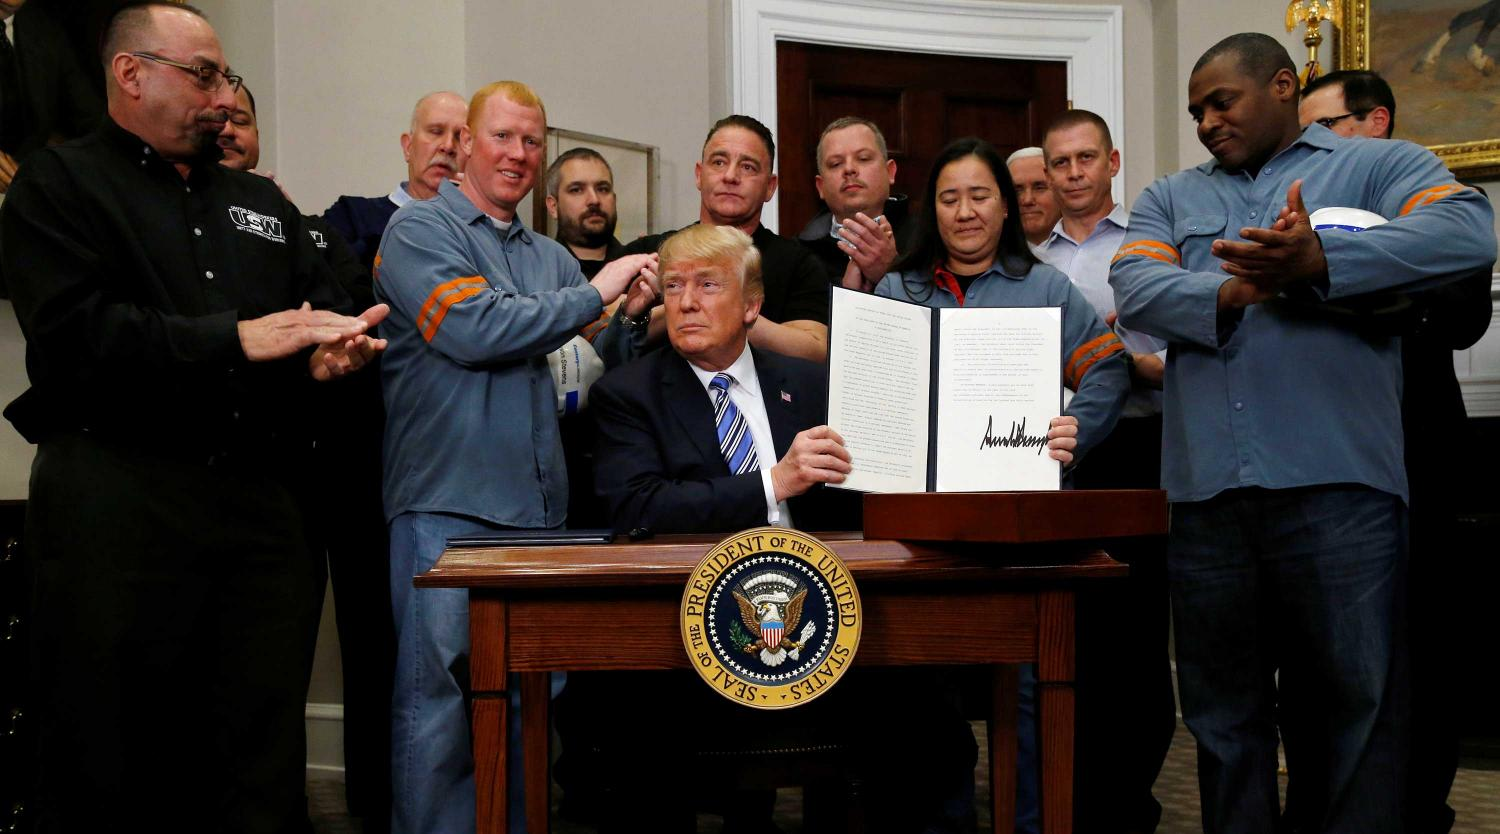 U.S. President Donald Trump poses as he signs a presidential proclamation placing tariffs on steel and aluminum imports while surrounded by workers from the steel and aluminum industries at the White House in Washington, U.S. March 8, 2018.